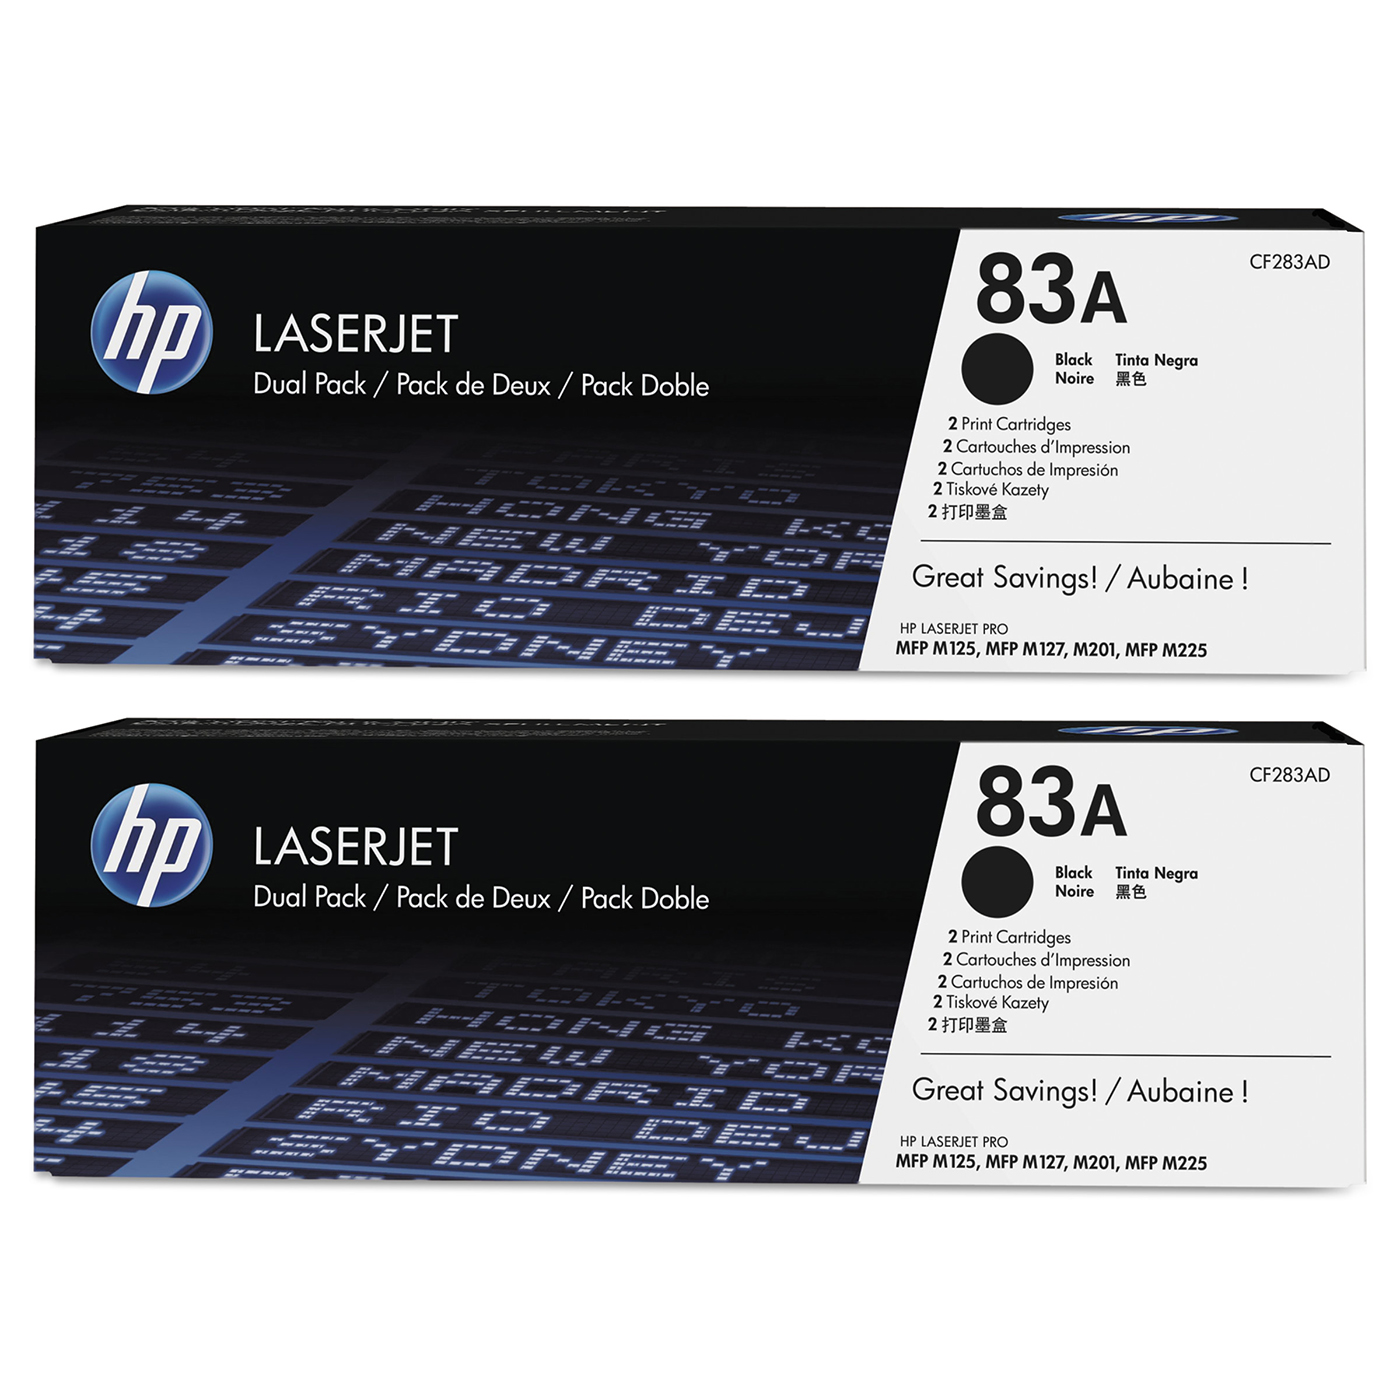 Buy two HP83A Black Toner dual packs and get $25 off